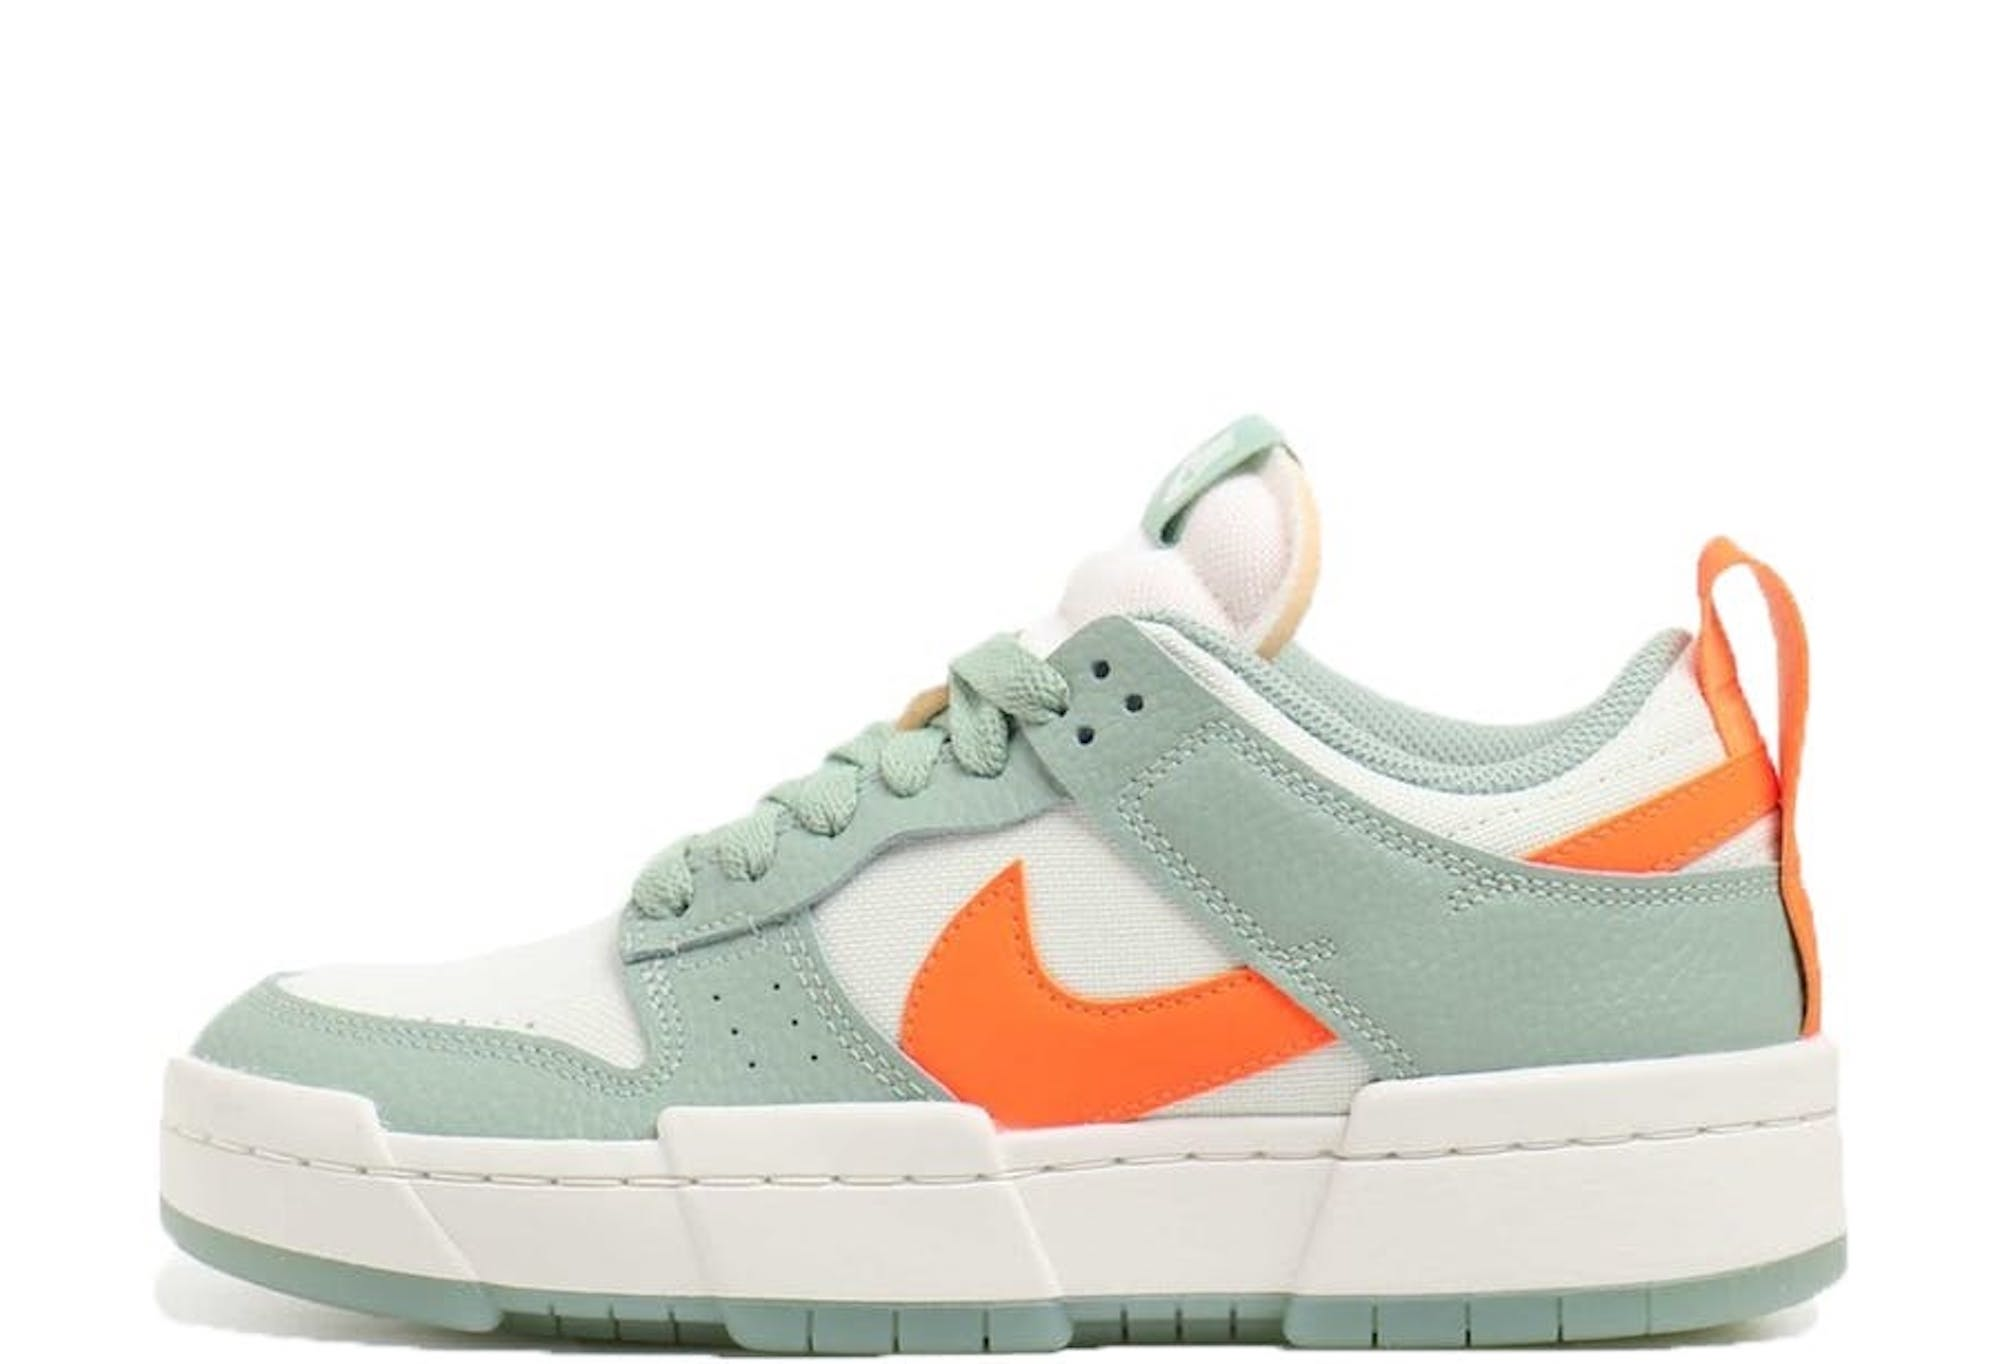 Klekt Nike WMNS Dunk Low Disrupt Sea Glass Hyper Crimson